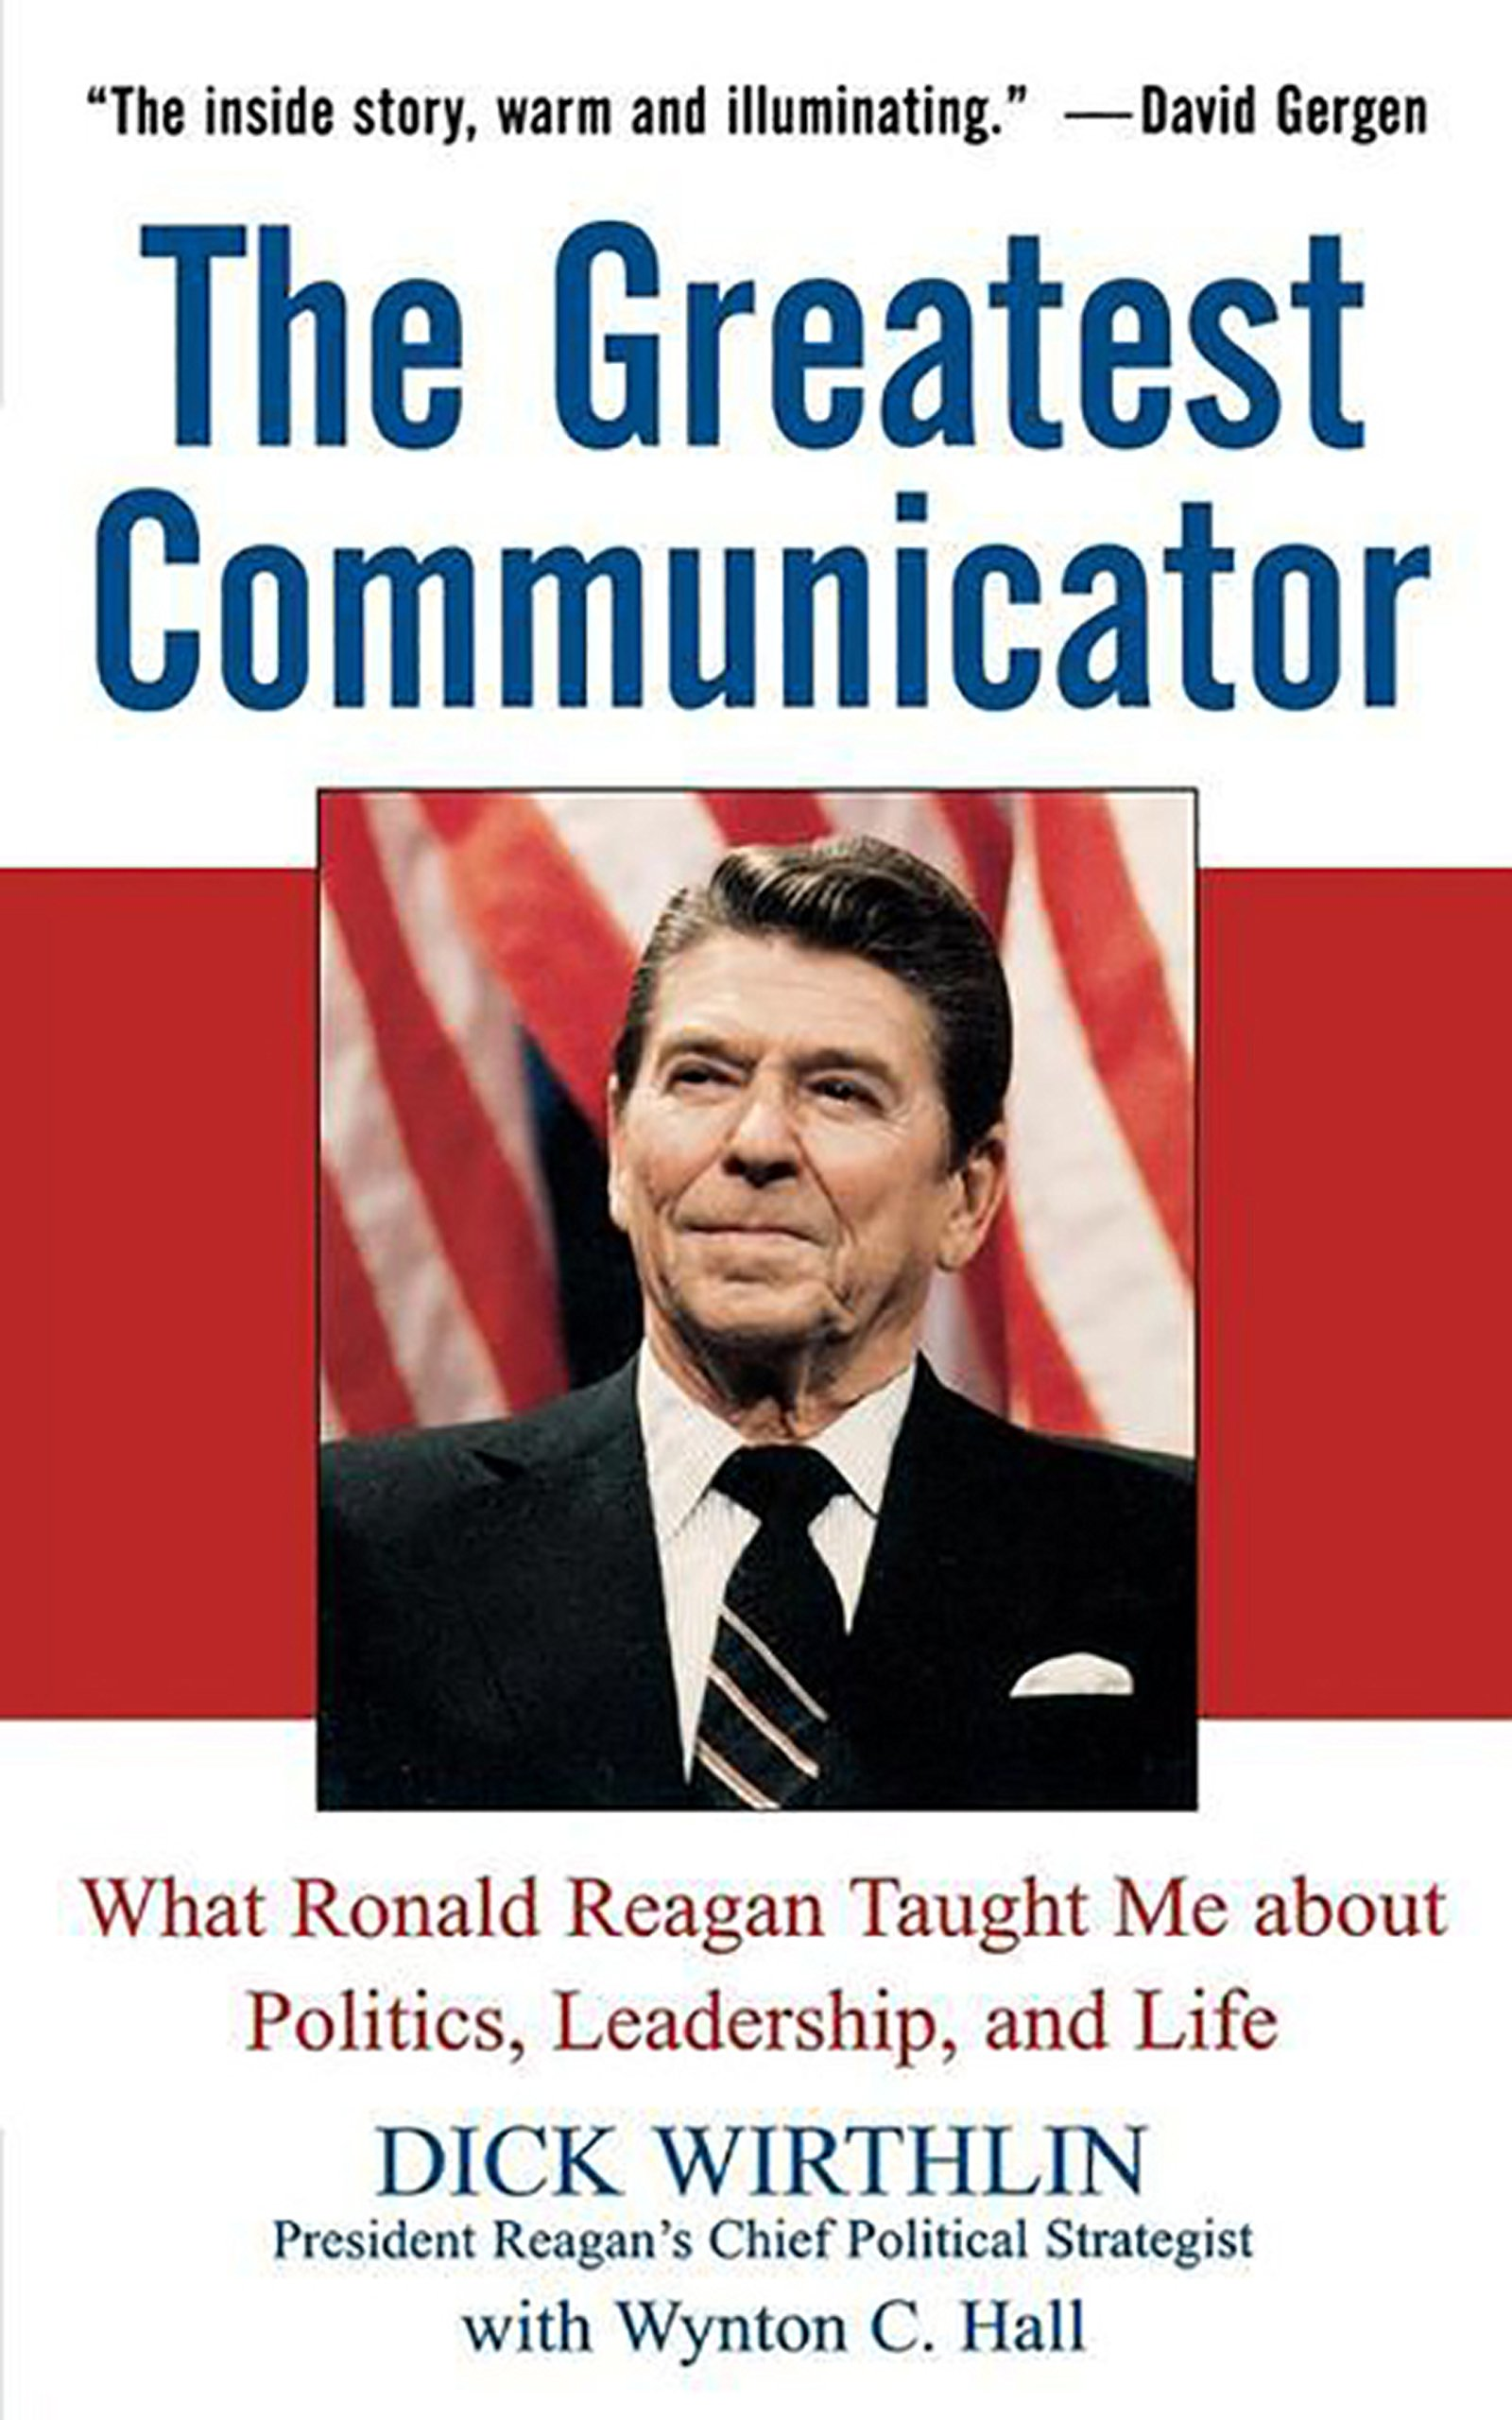 The Greatest Communicator: What Ronald Reagan Taught Me About Politics, Leadership, and Life PDF